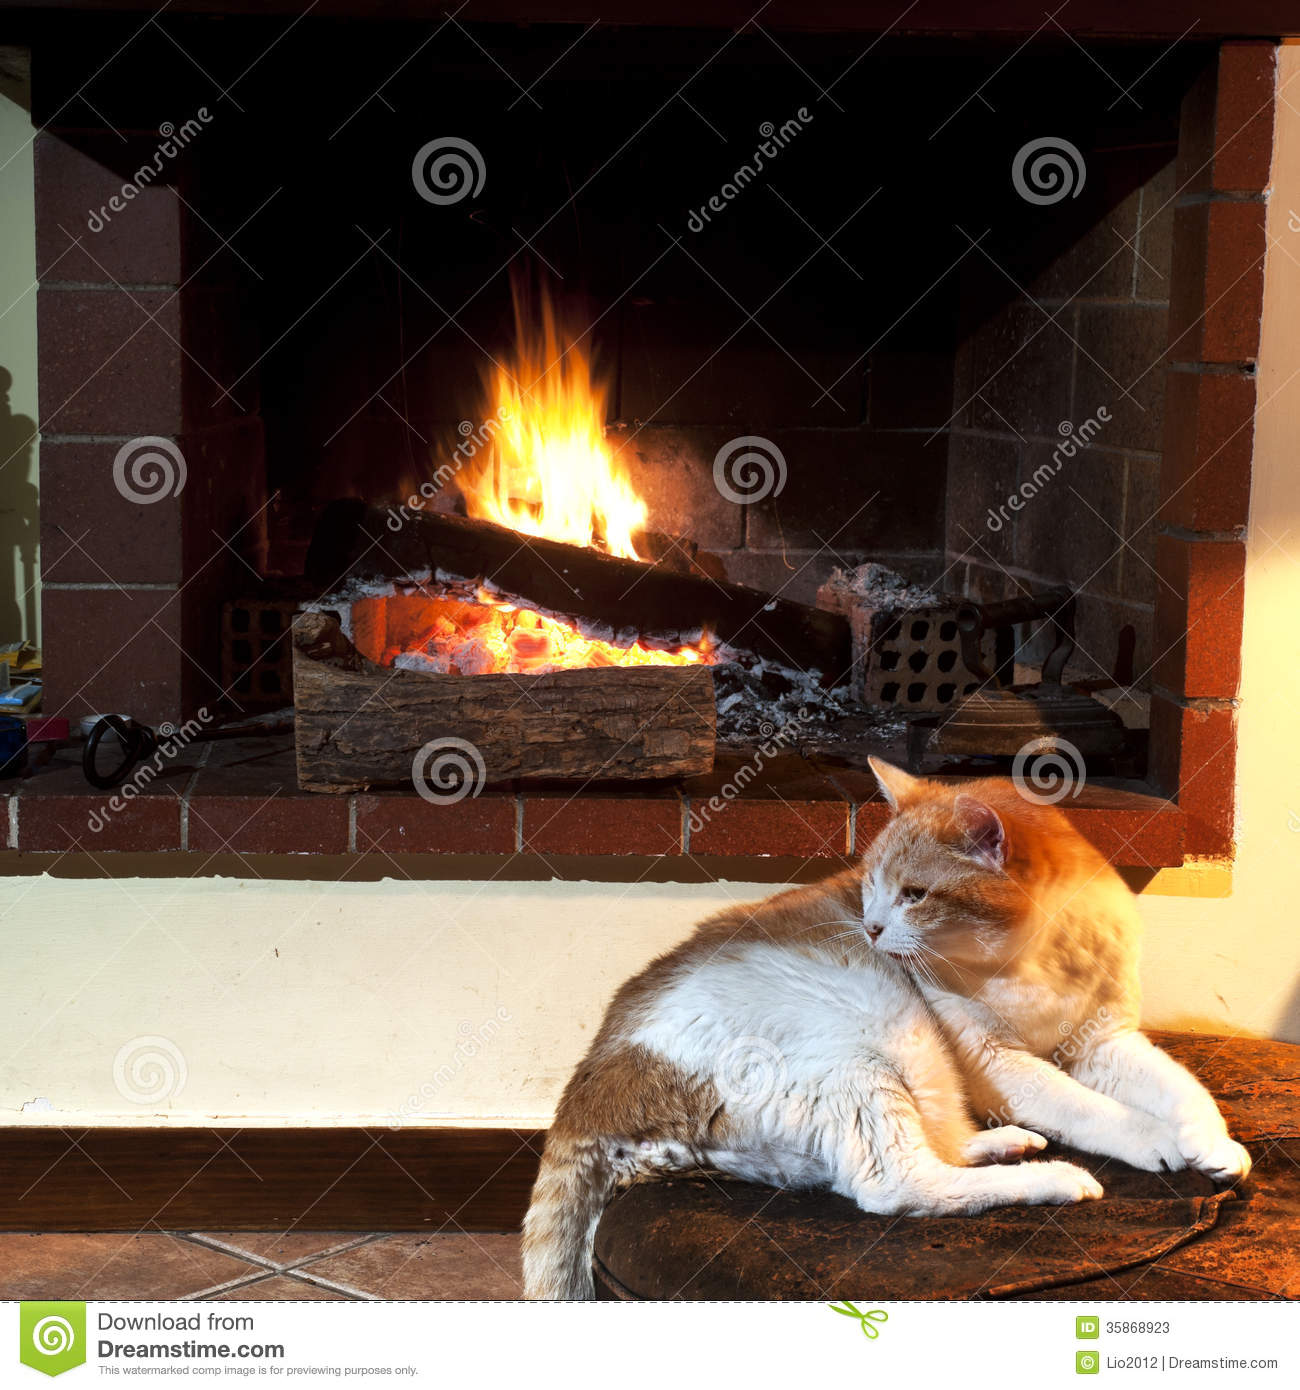 Cat In Front Of Fireplace Stock Images - Image: 35868954